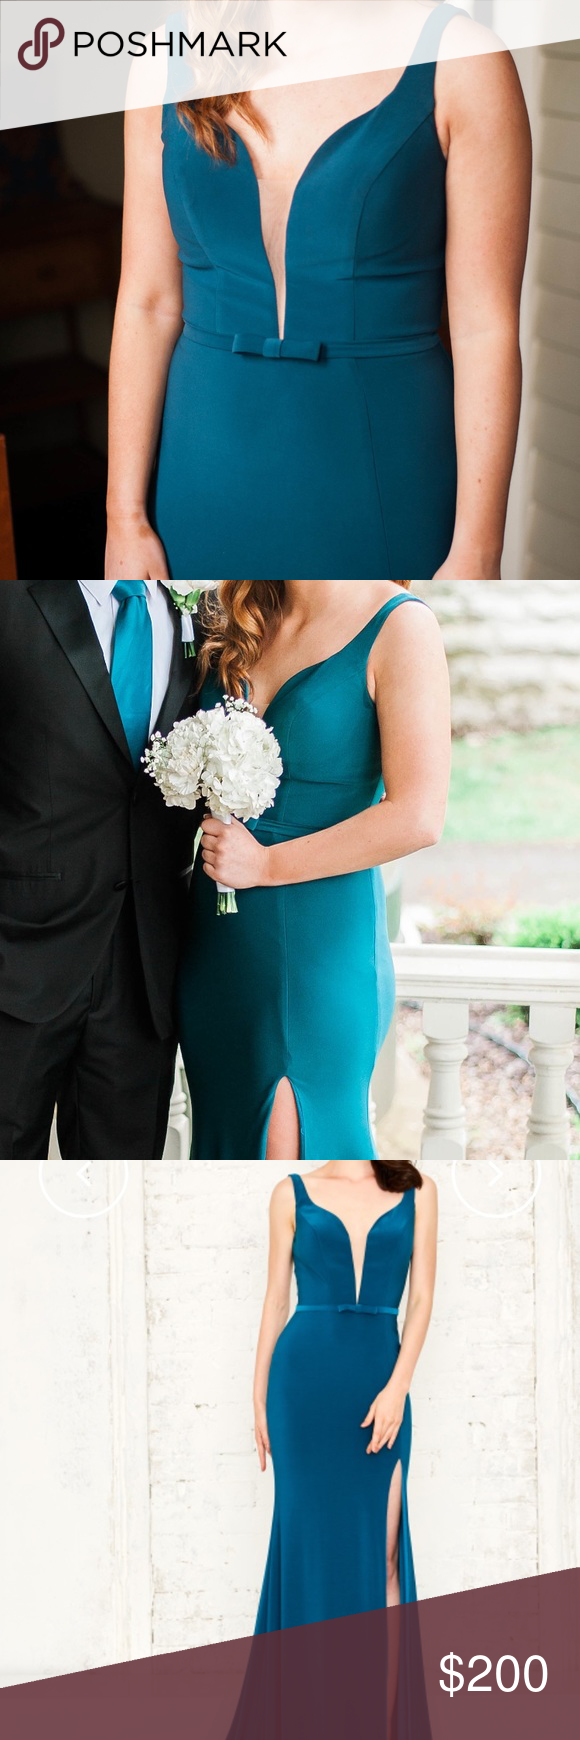 Angela and alison size prom dress dark teal teal colors and prom